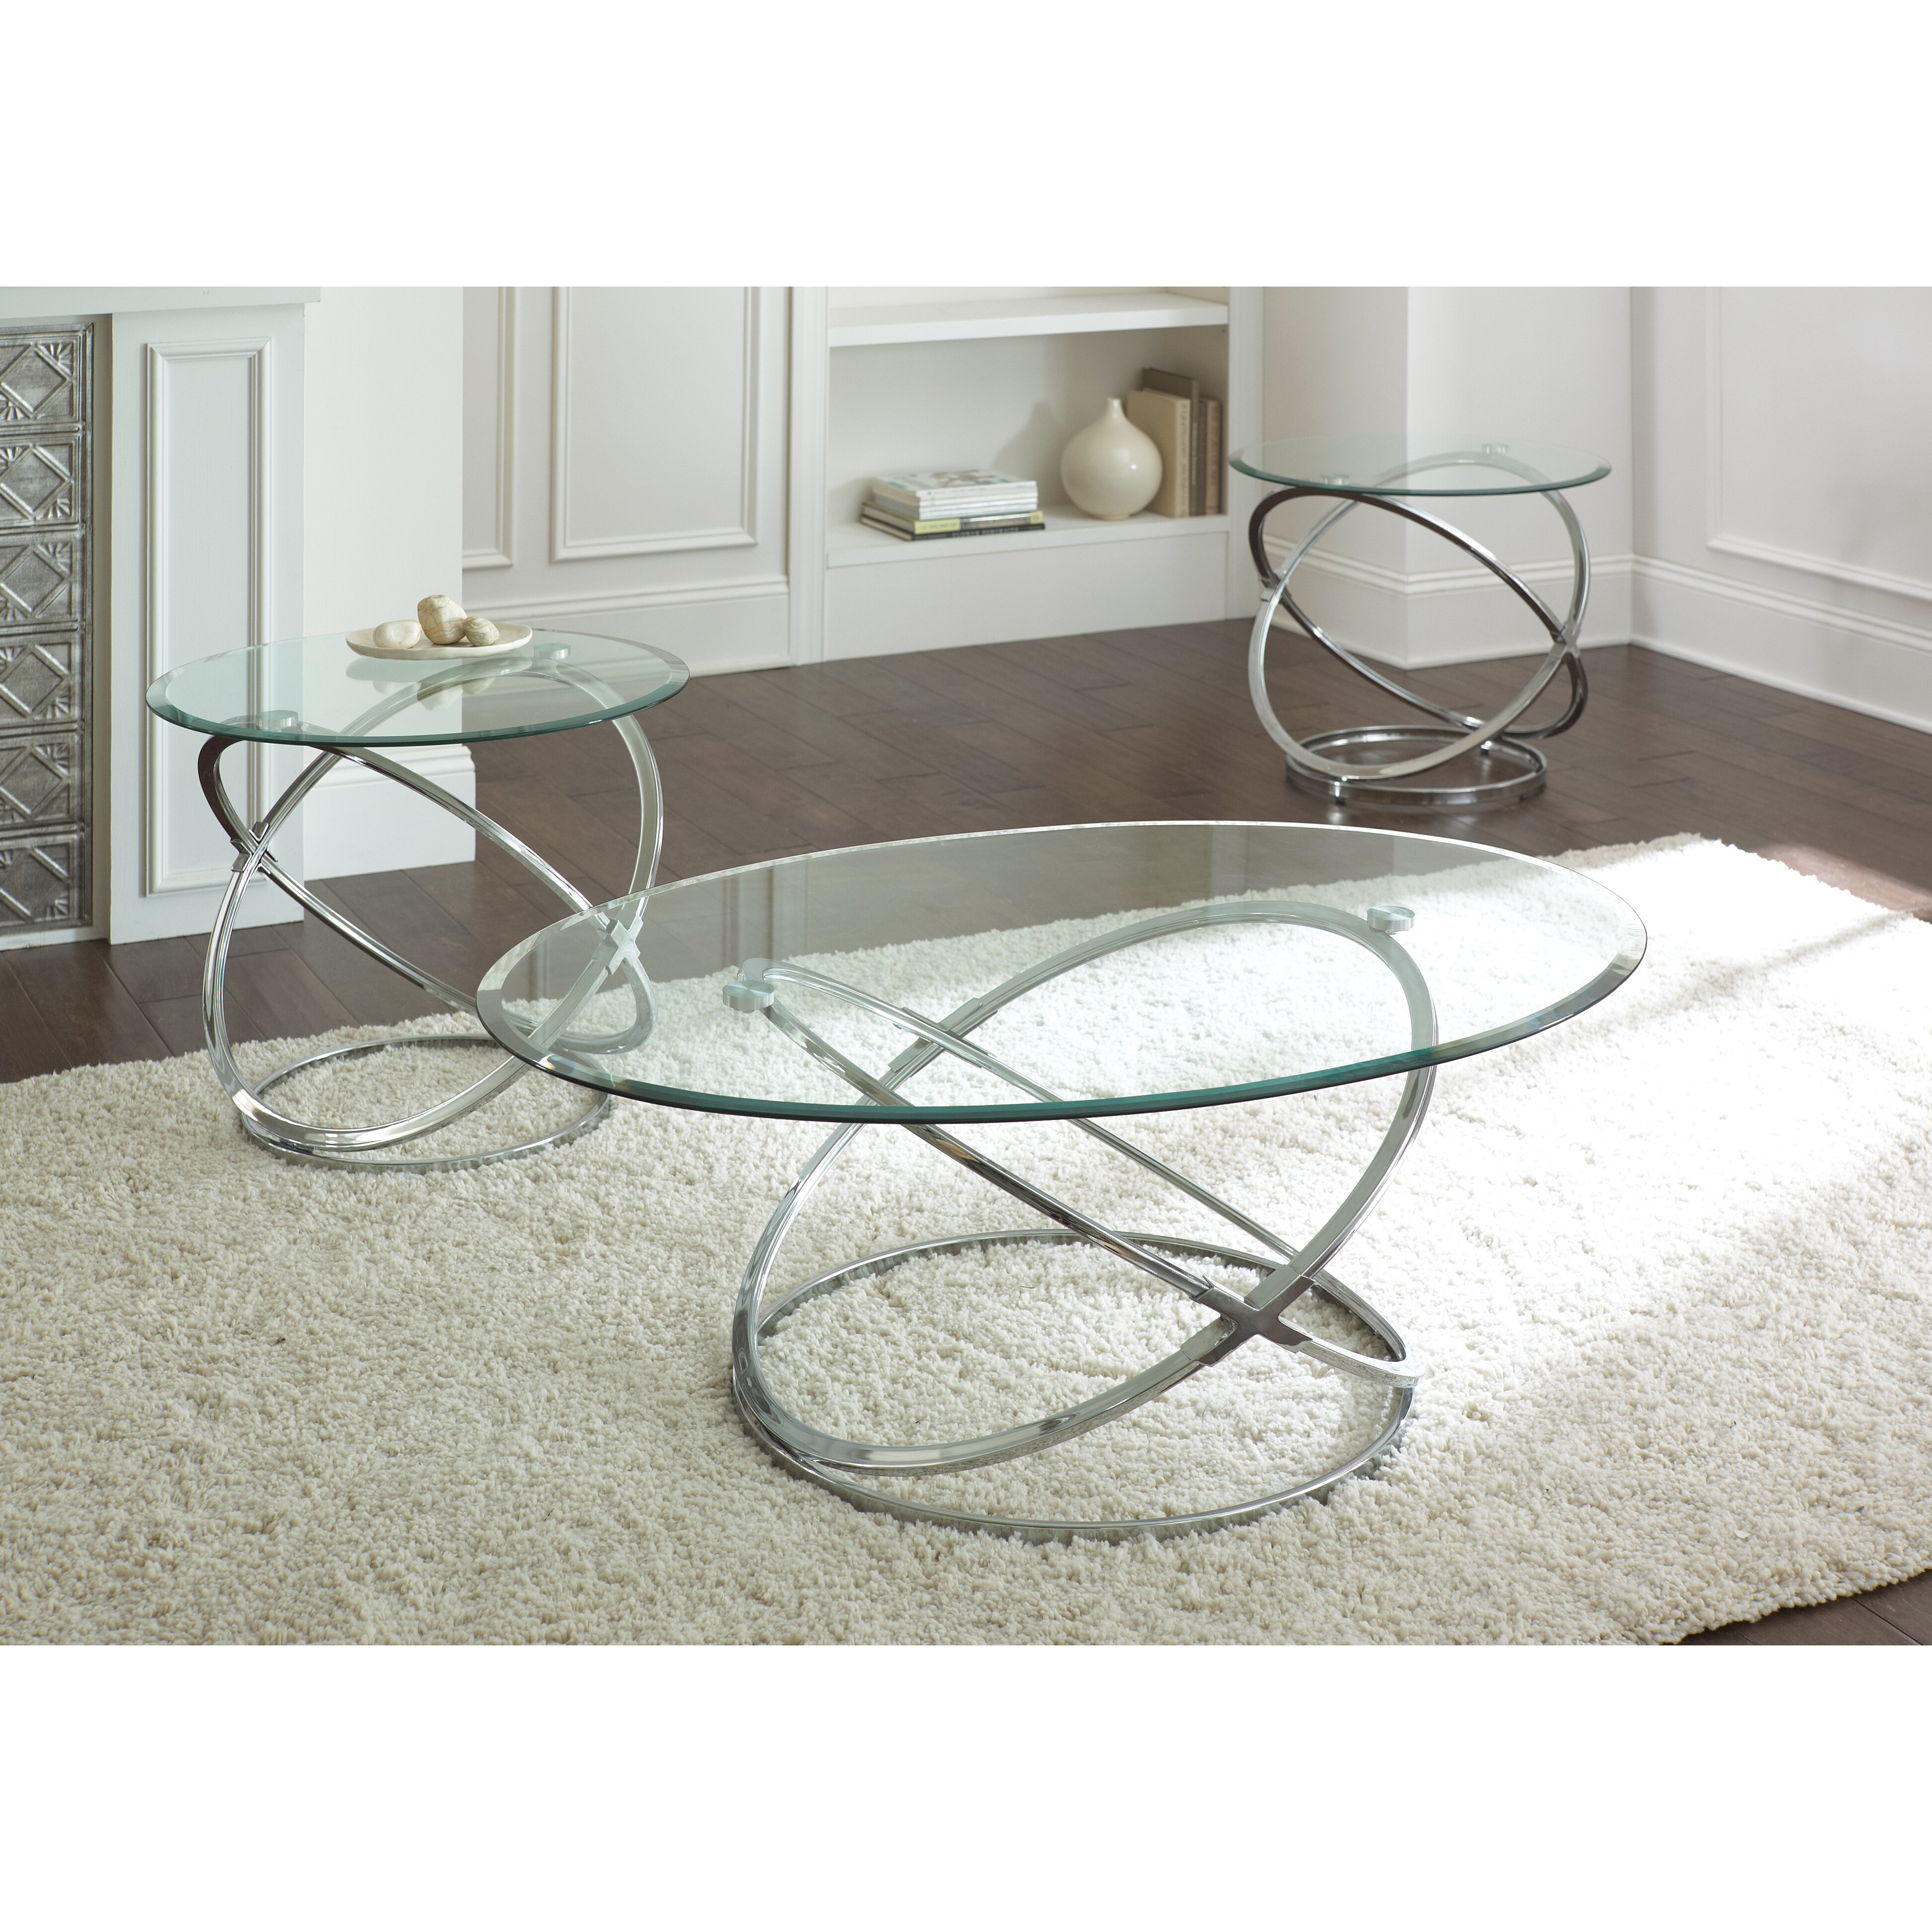 End Table And Coffee Table Set Steve Silver Furniture Orion Coffee Table Set Reviews Wayfair